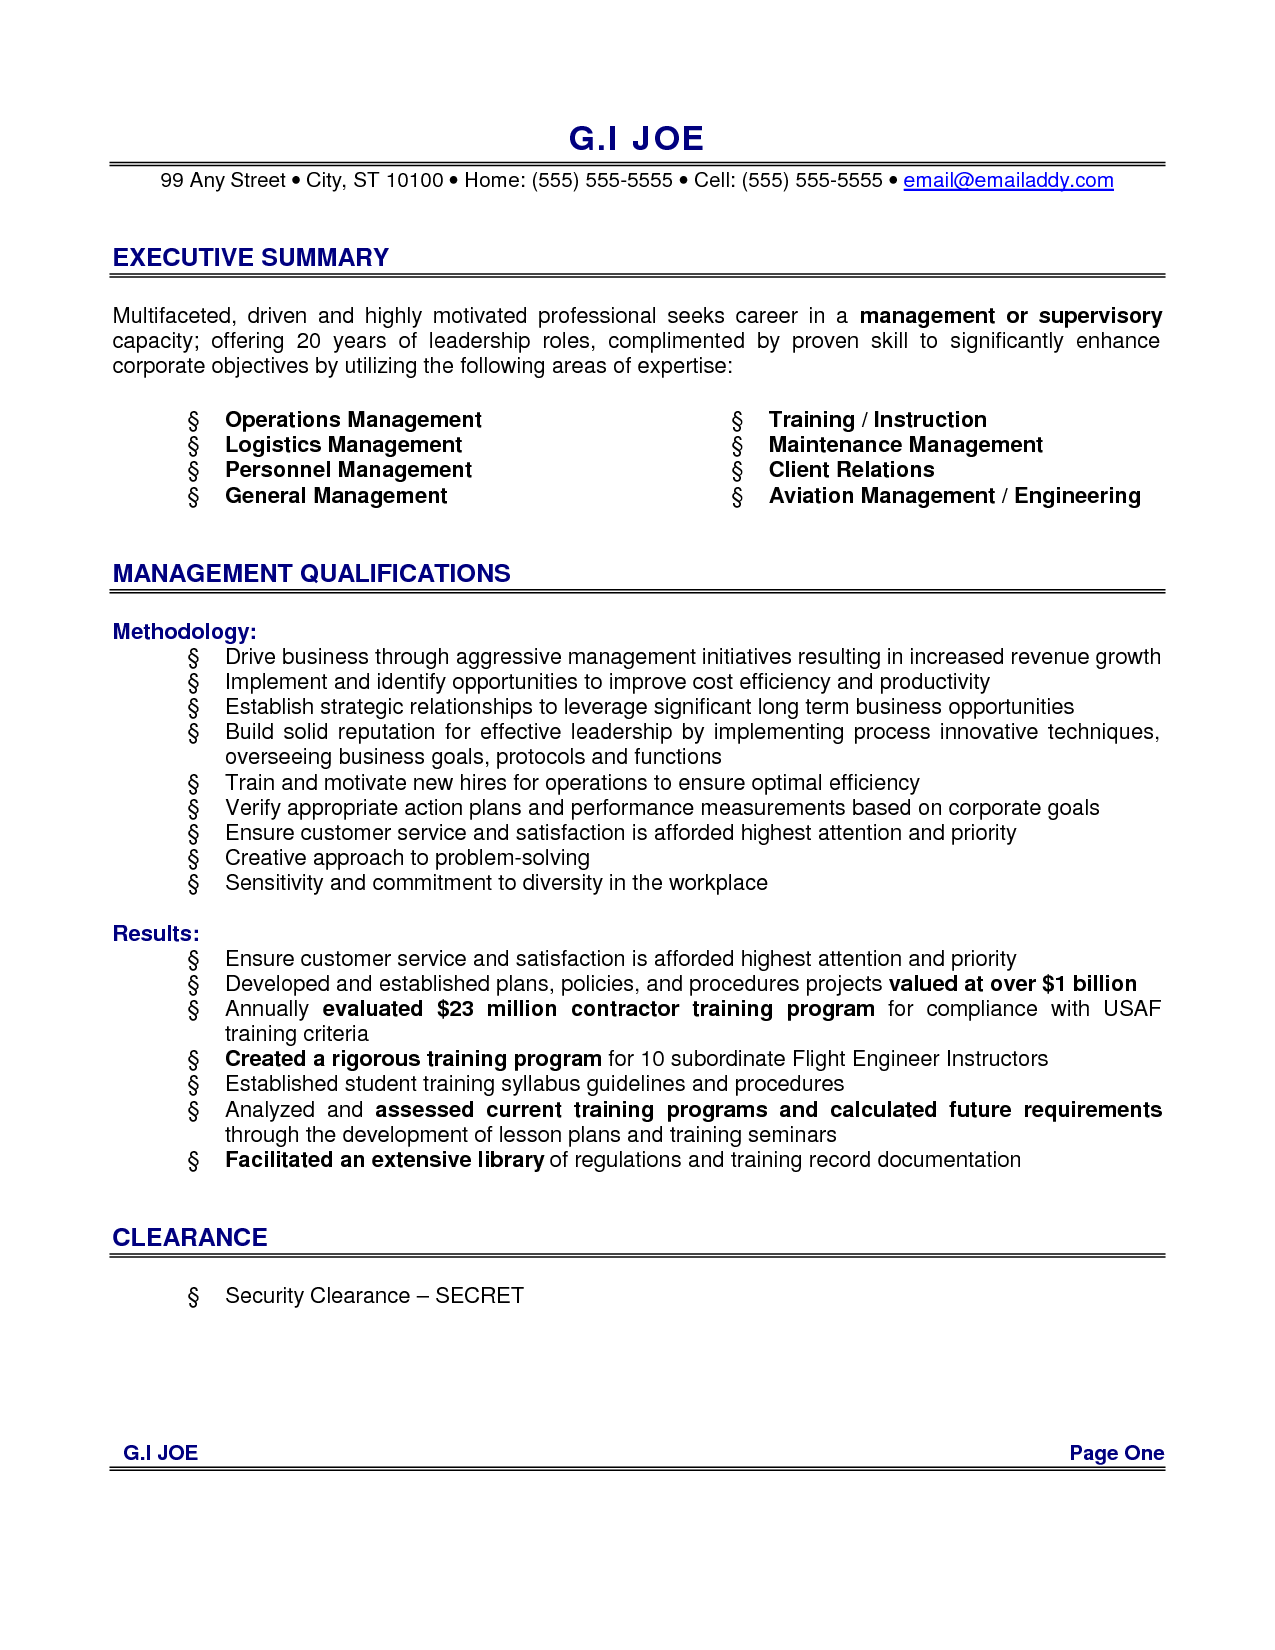 Summary For Resume Example Resumeexamples For Executive Summary With Management